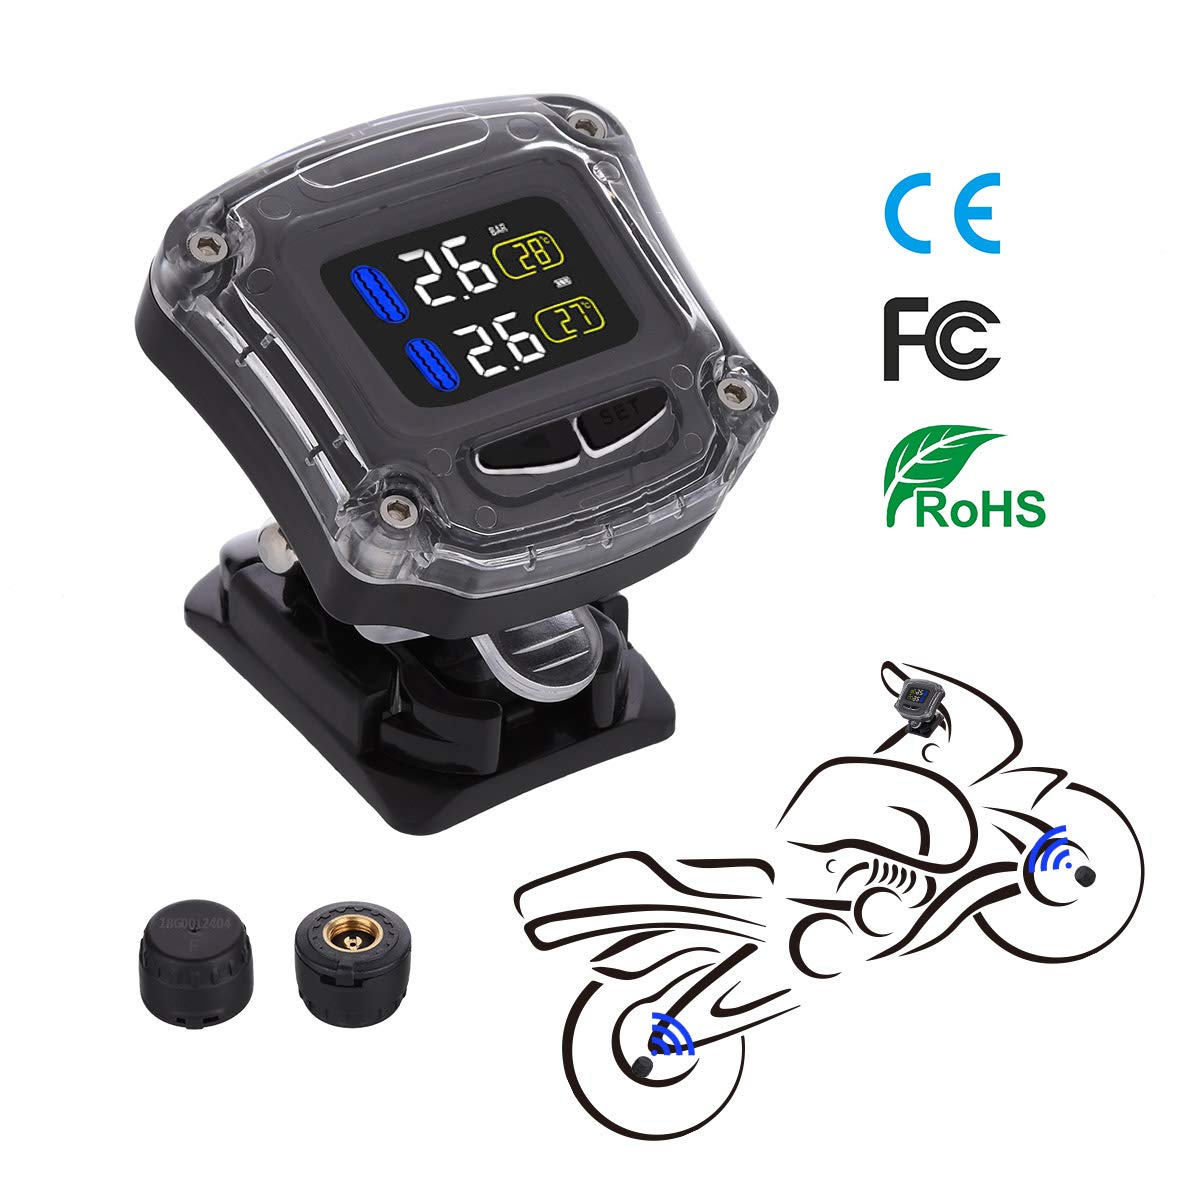 Tire Pressure Monitoring System TPMS Wireless Tire Pressure Monitoring Motorcycle Tires Motor Fatbike Bicycle Auto Tyre Alarm Waterproof with 2 External Sensors for Two-Wheeled Motorcycle by AUTMOR